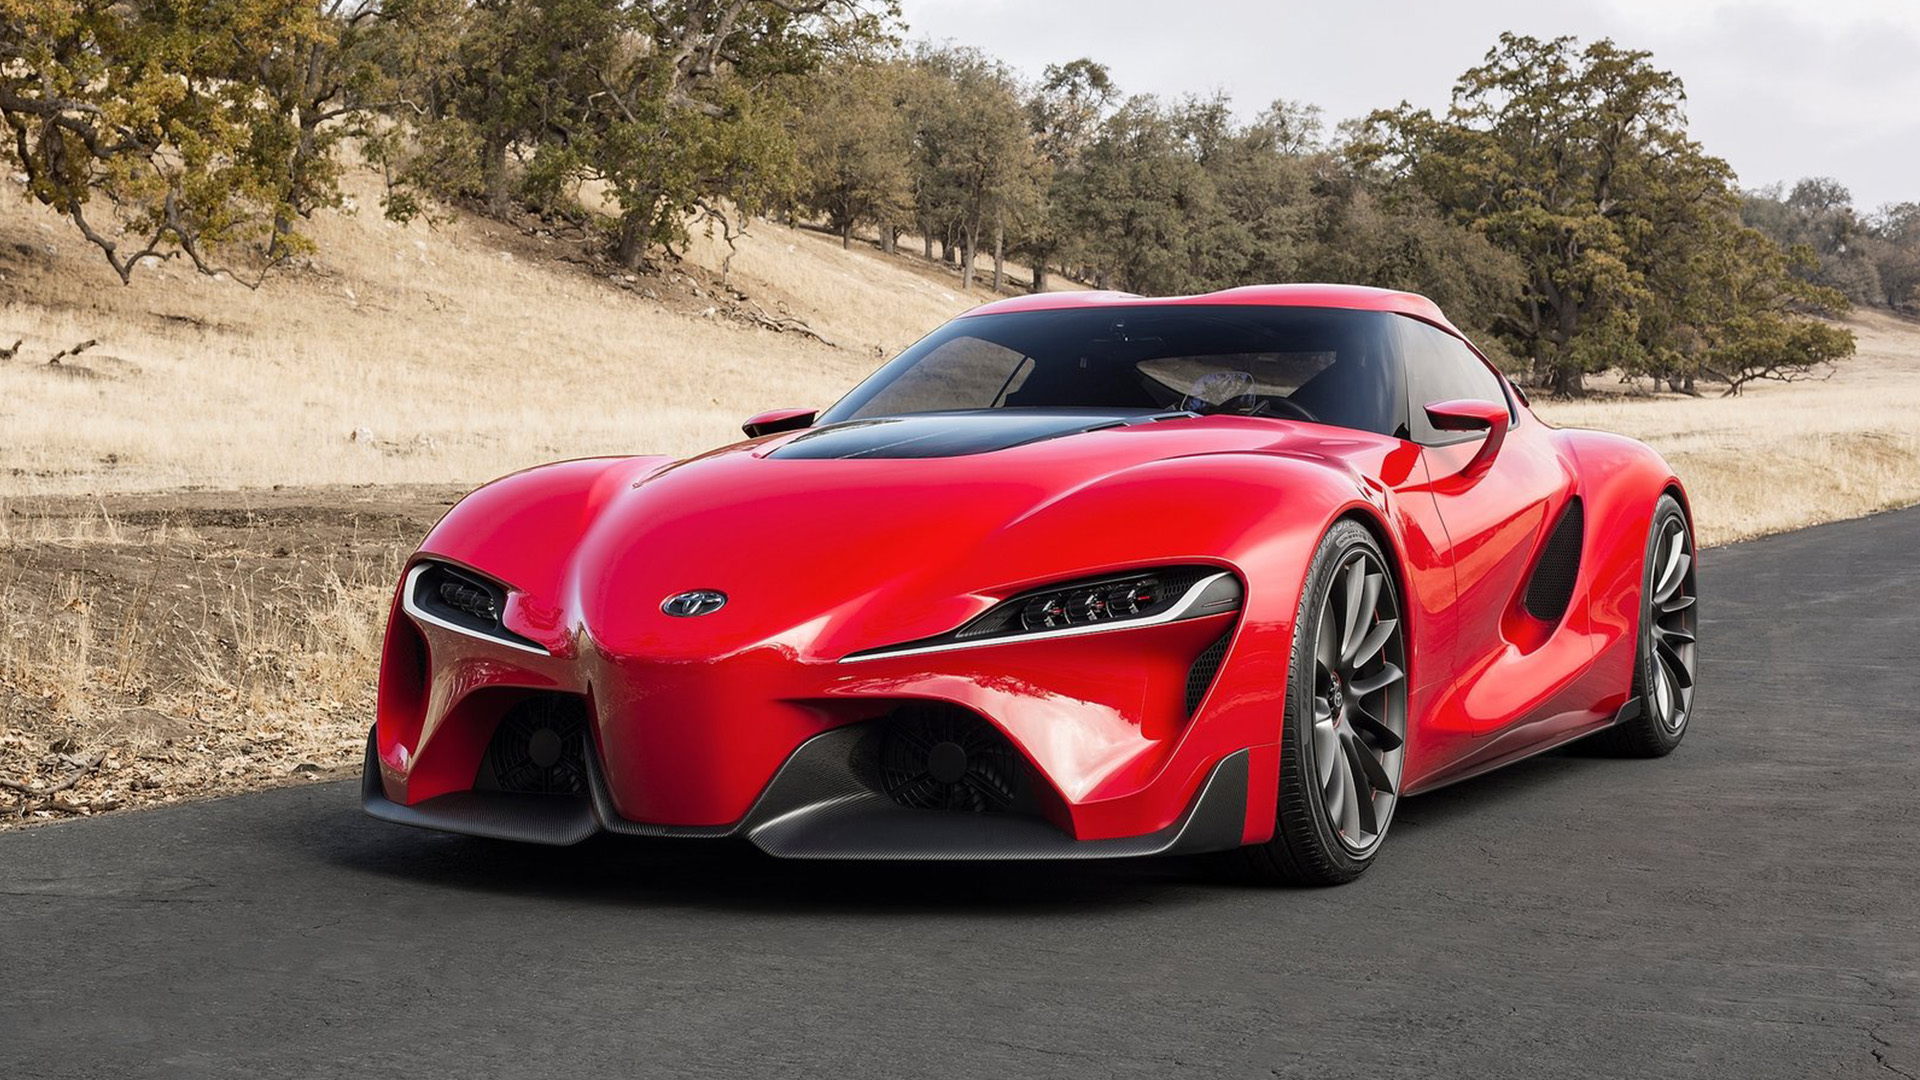 Toyota Is Always Innovating, And Fred Haas Toyota World Canu0027t Wait To See  The Next Generation Supercar Currently Under Discussion.